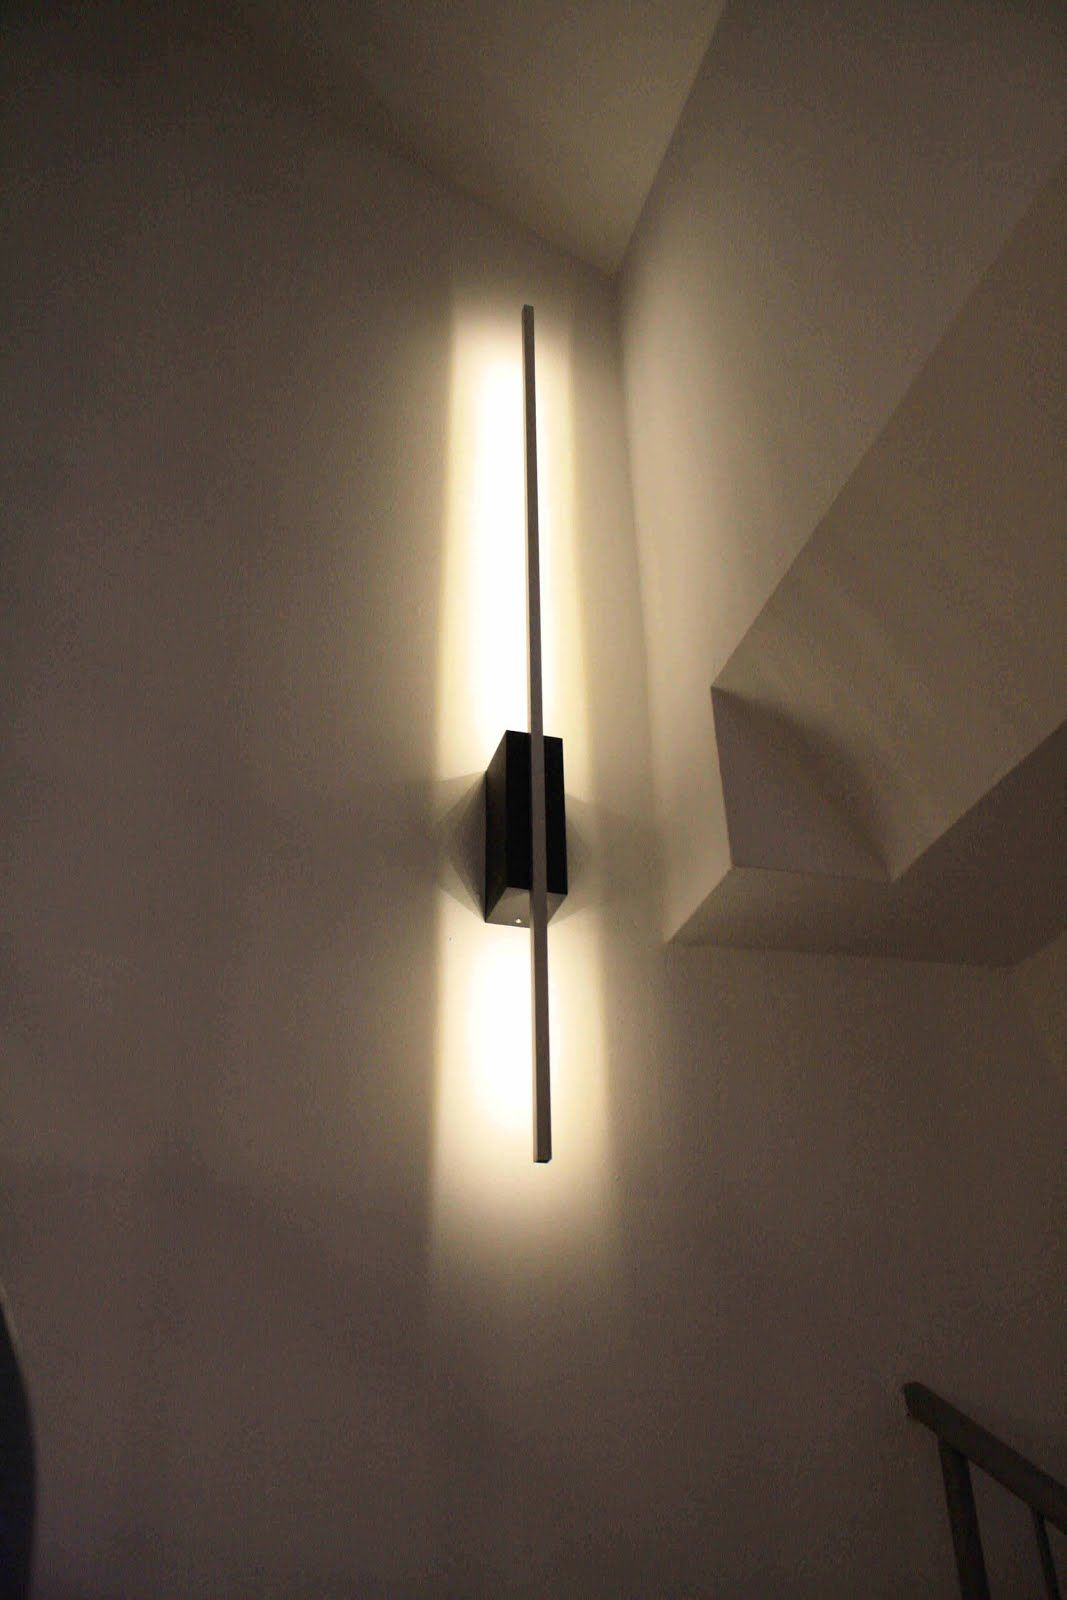 Keller Lampen Ledberg Wall Lamp For Stairway Electrical Illumination